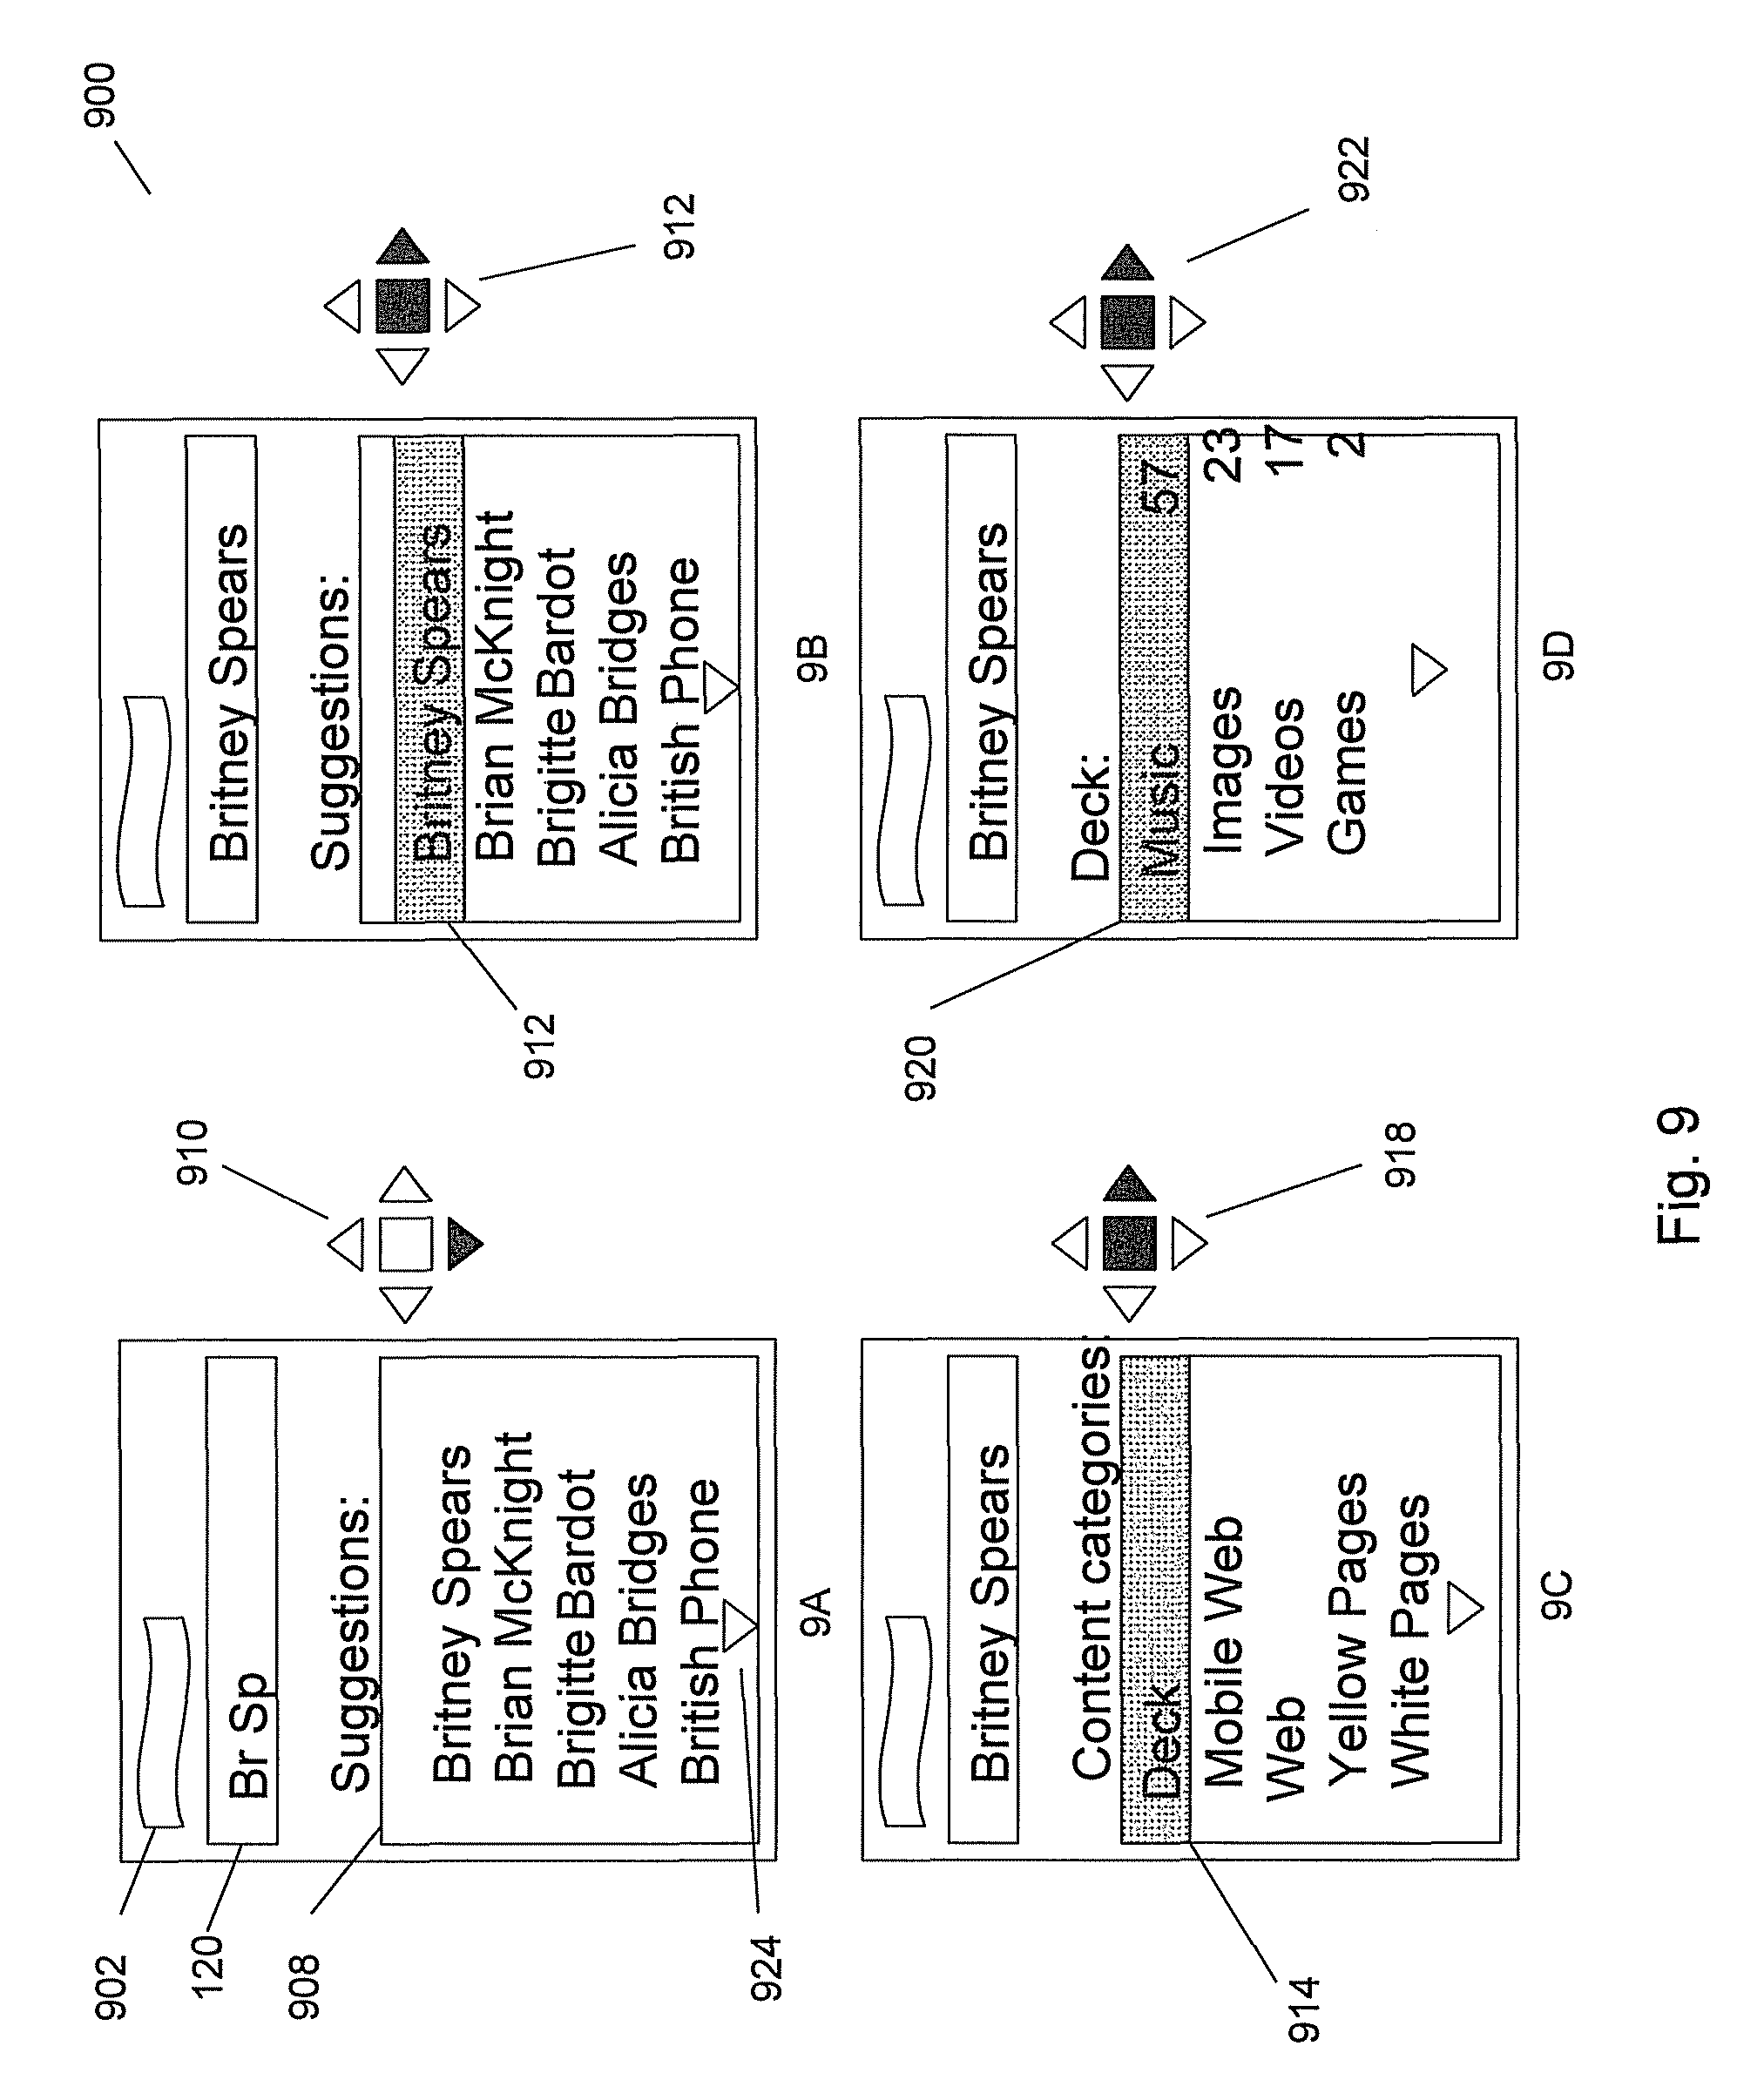 Patent Us8302030 Management Of Multiple Advertising Inventories How To Connect Ampere Meter Home Wiring Urdu And Hindi Video Drawing